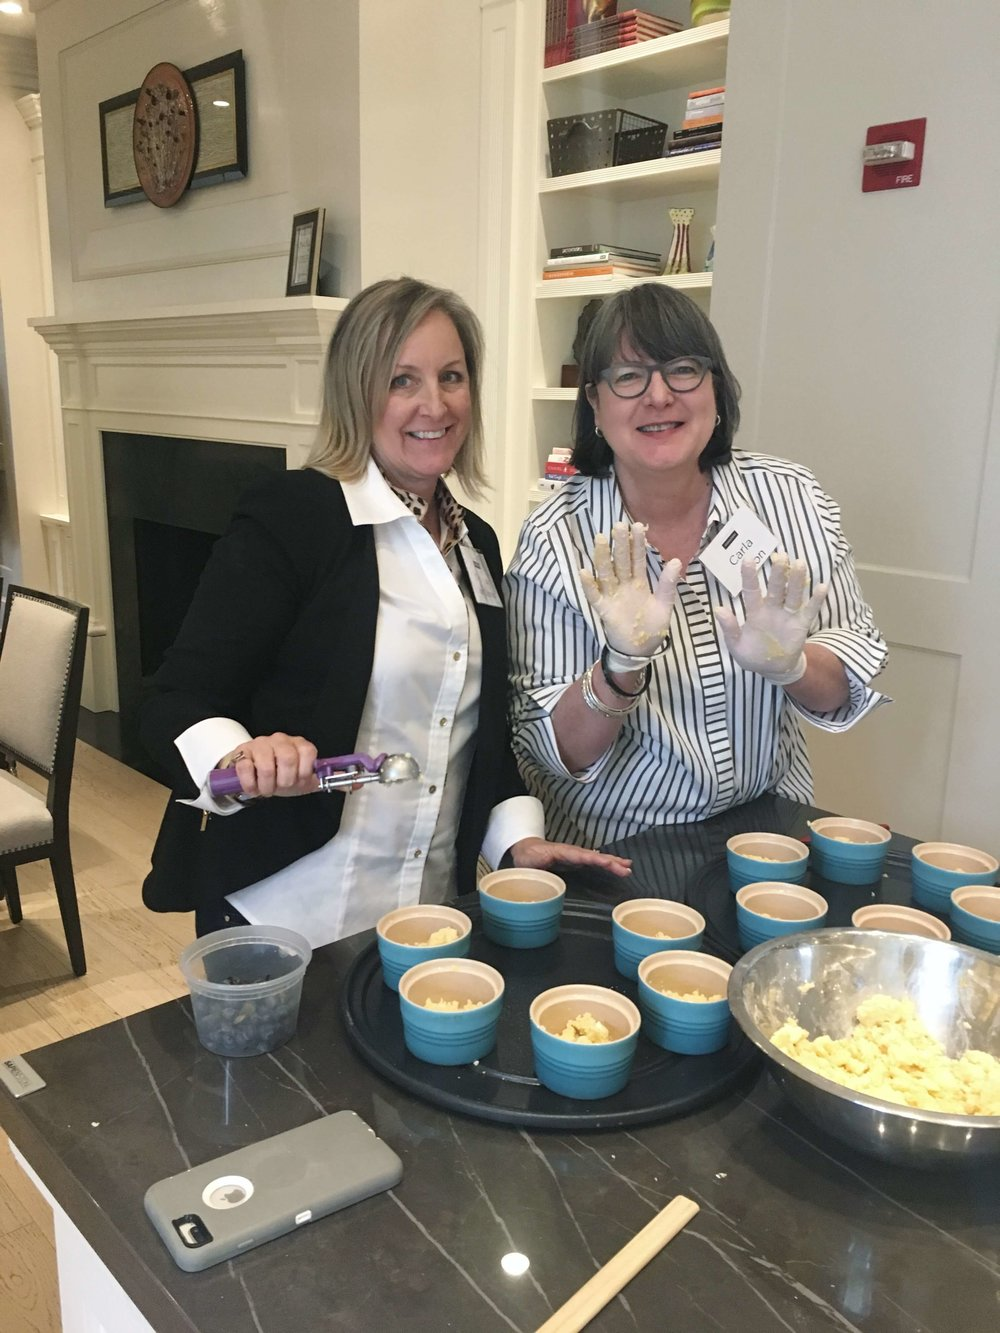 Deborah von Donop and I making a berry crumble. Cooking with a chef at Monogram Appliances showroom #monogramappliances